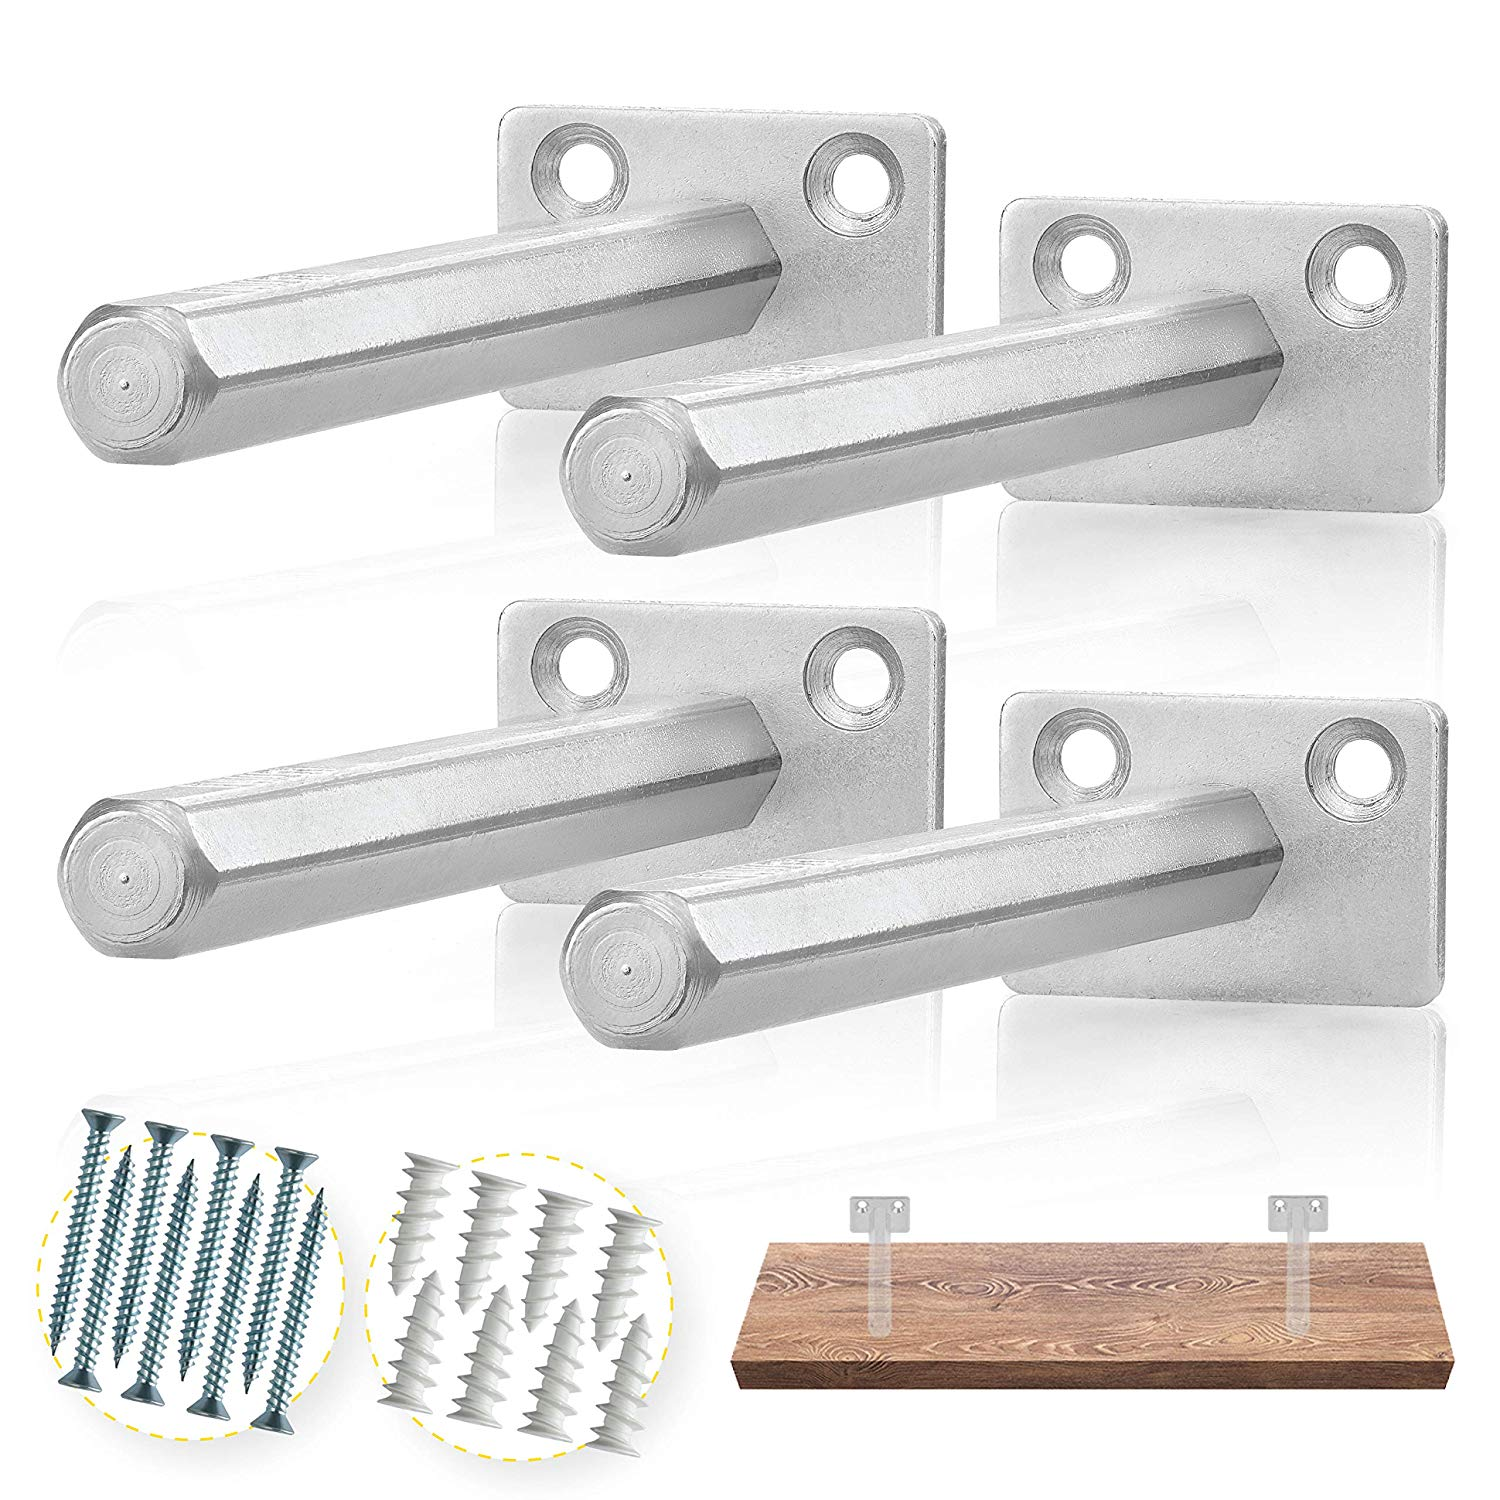 batoda floating shelf bracket pcs galvanized steel xuzl fixing kit blind supports hidden brackets for wood shelves concealed support kitchen island with seating self contained